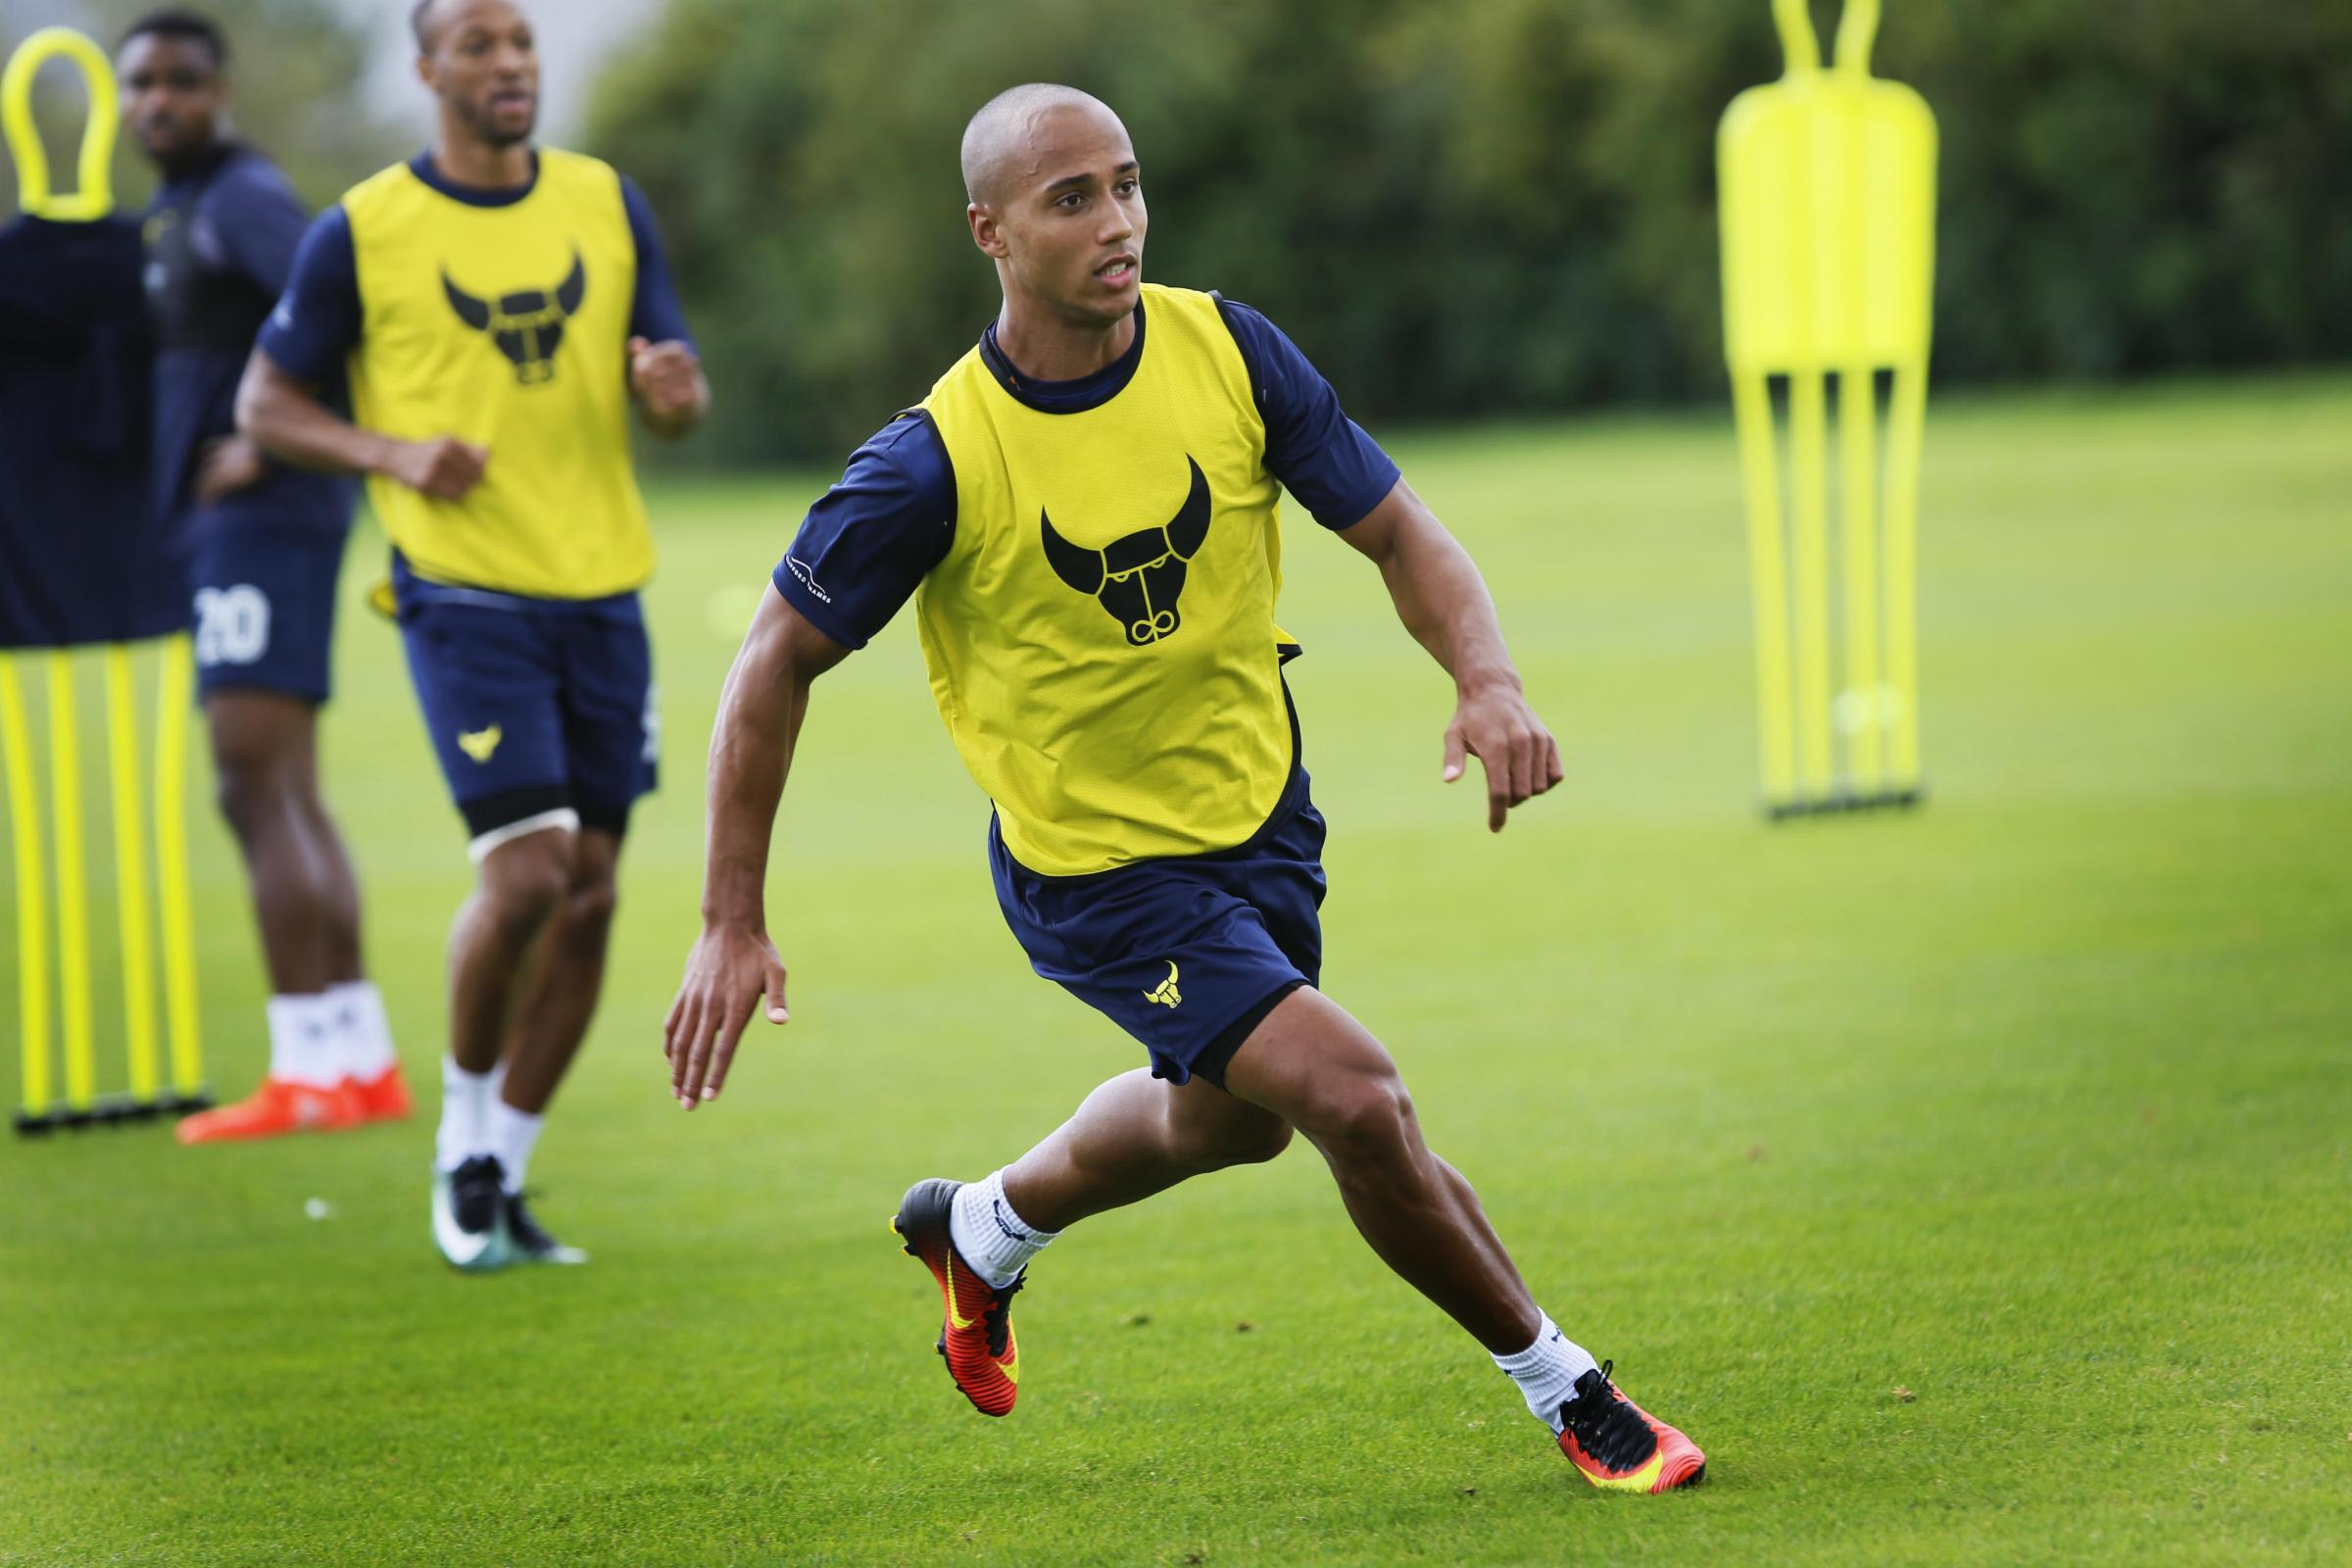 ON BOARD: Gino van Kessel in training with Oxford United for the first time yesterday 	 Picture: Ed Nix